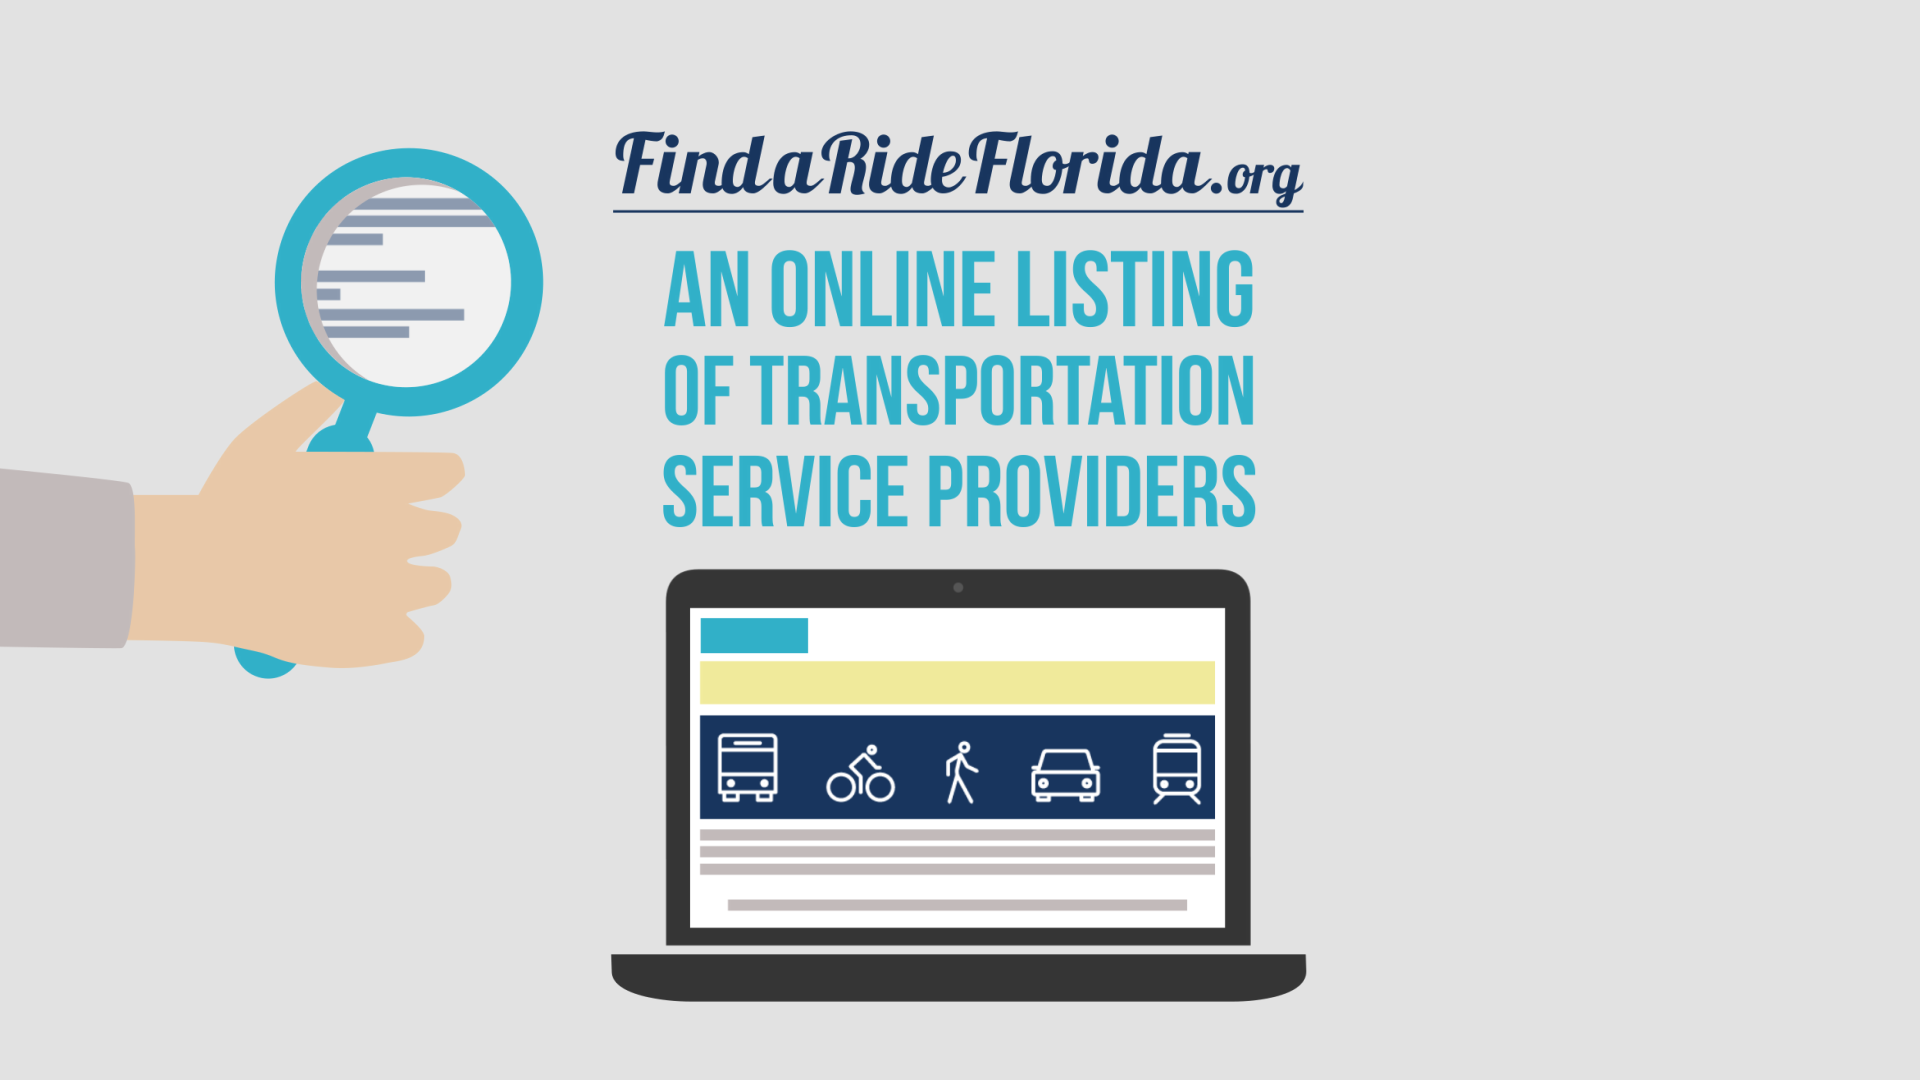 Global-5 develops marketing and outreach campaign for launching FindaRideFlorida.org